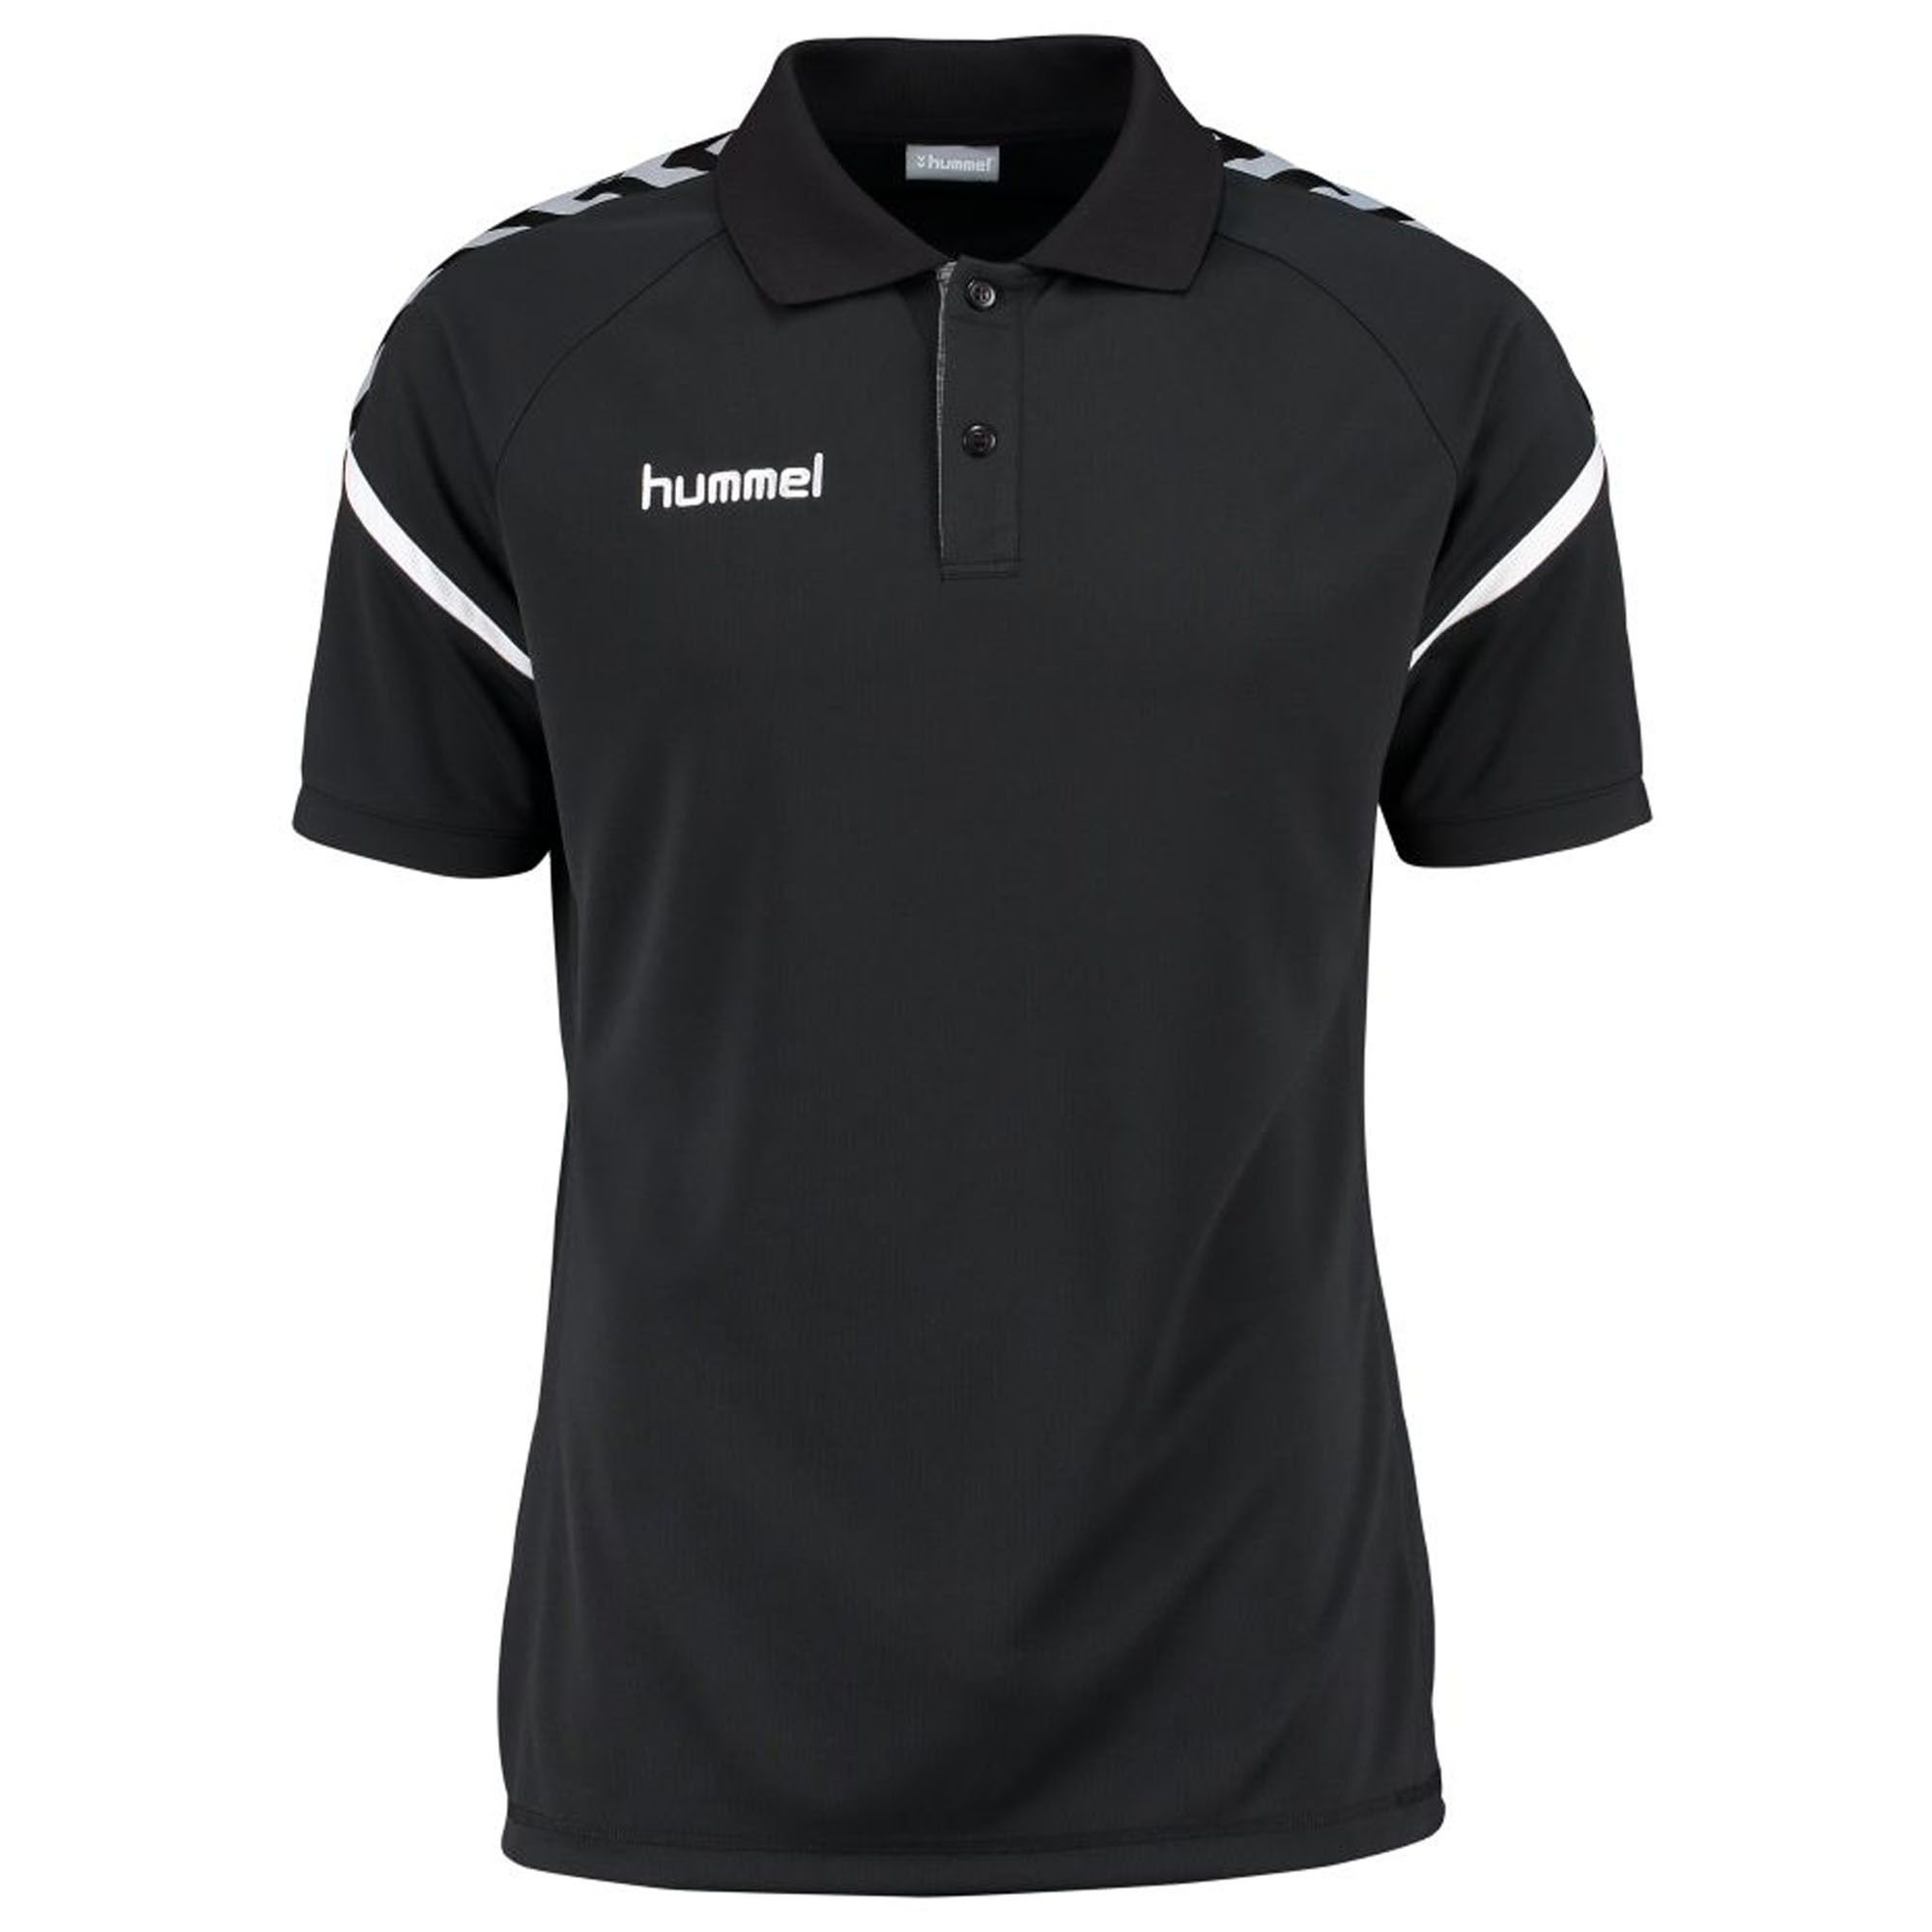 HUMMEL Hummel Authentic Charge Functional Poloshirt Herren